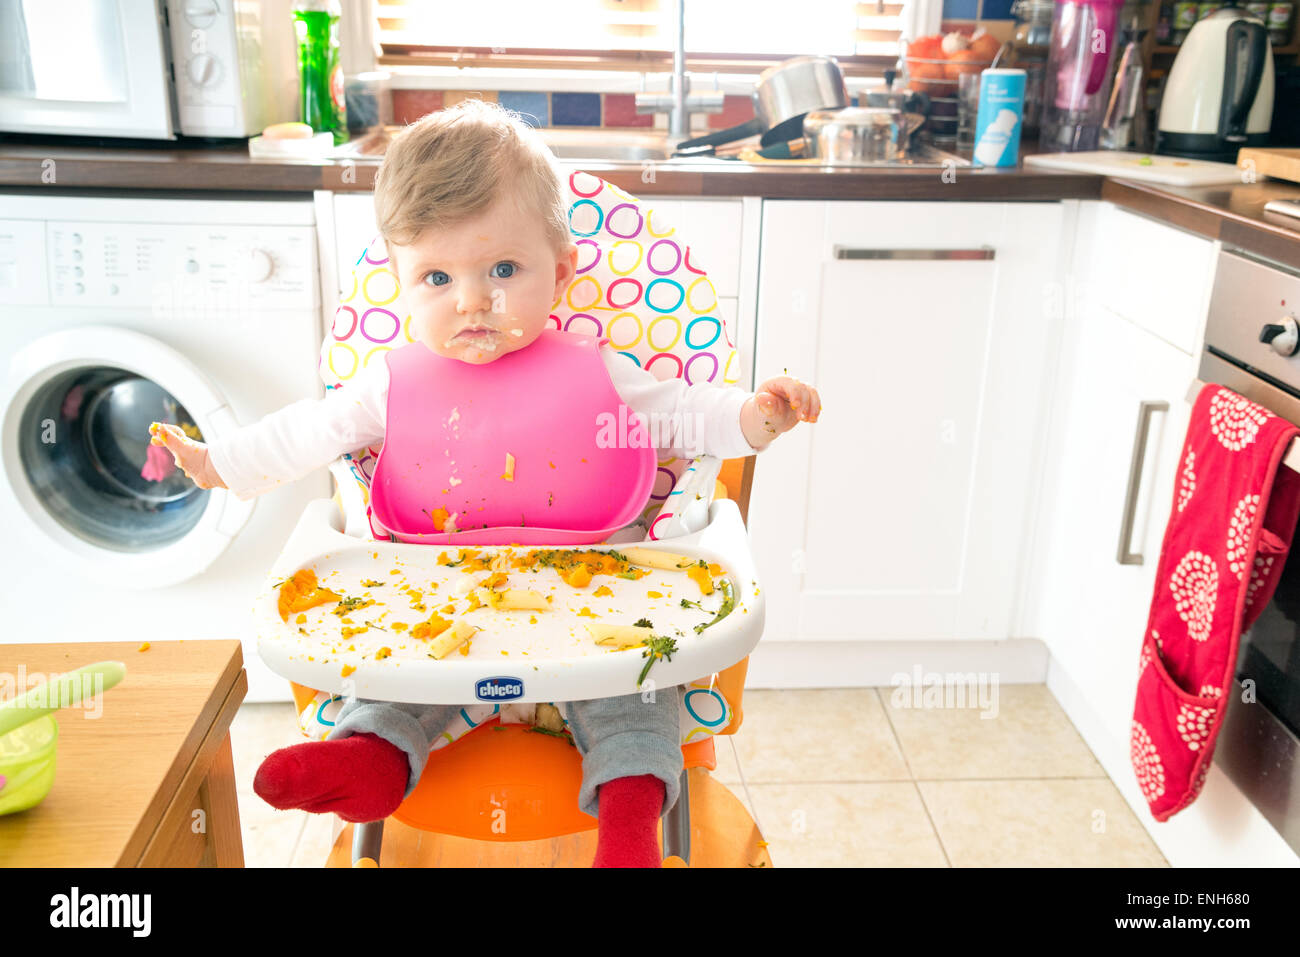 Baby led feeding a six month old baby eating messily - Stock Image